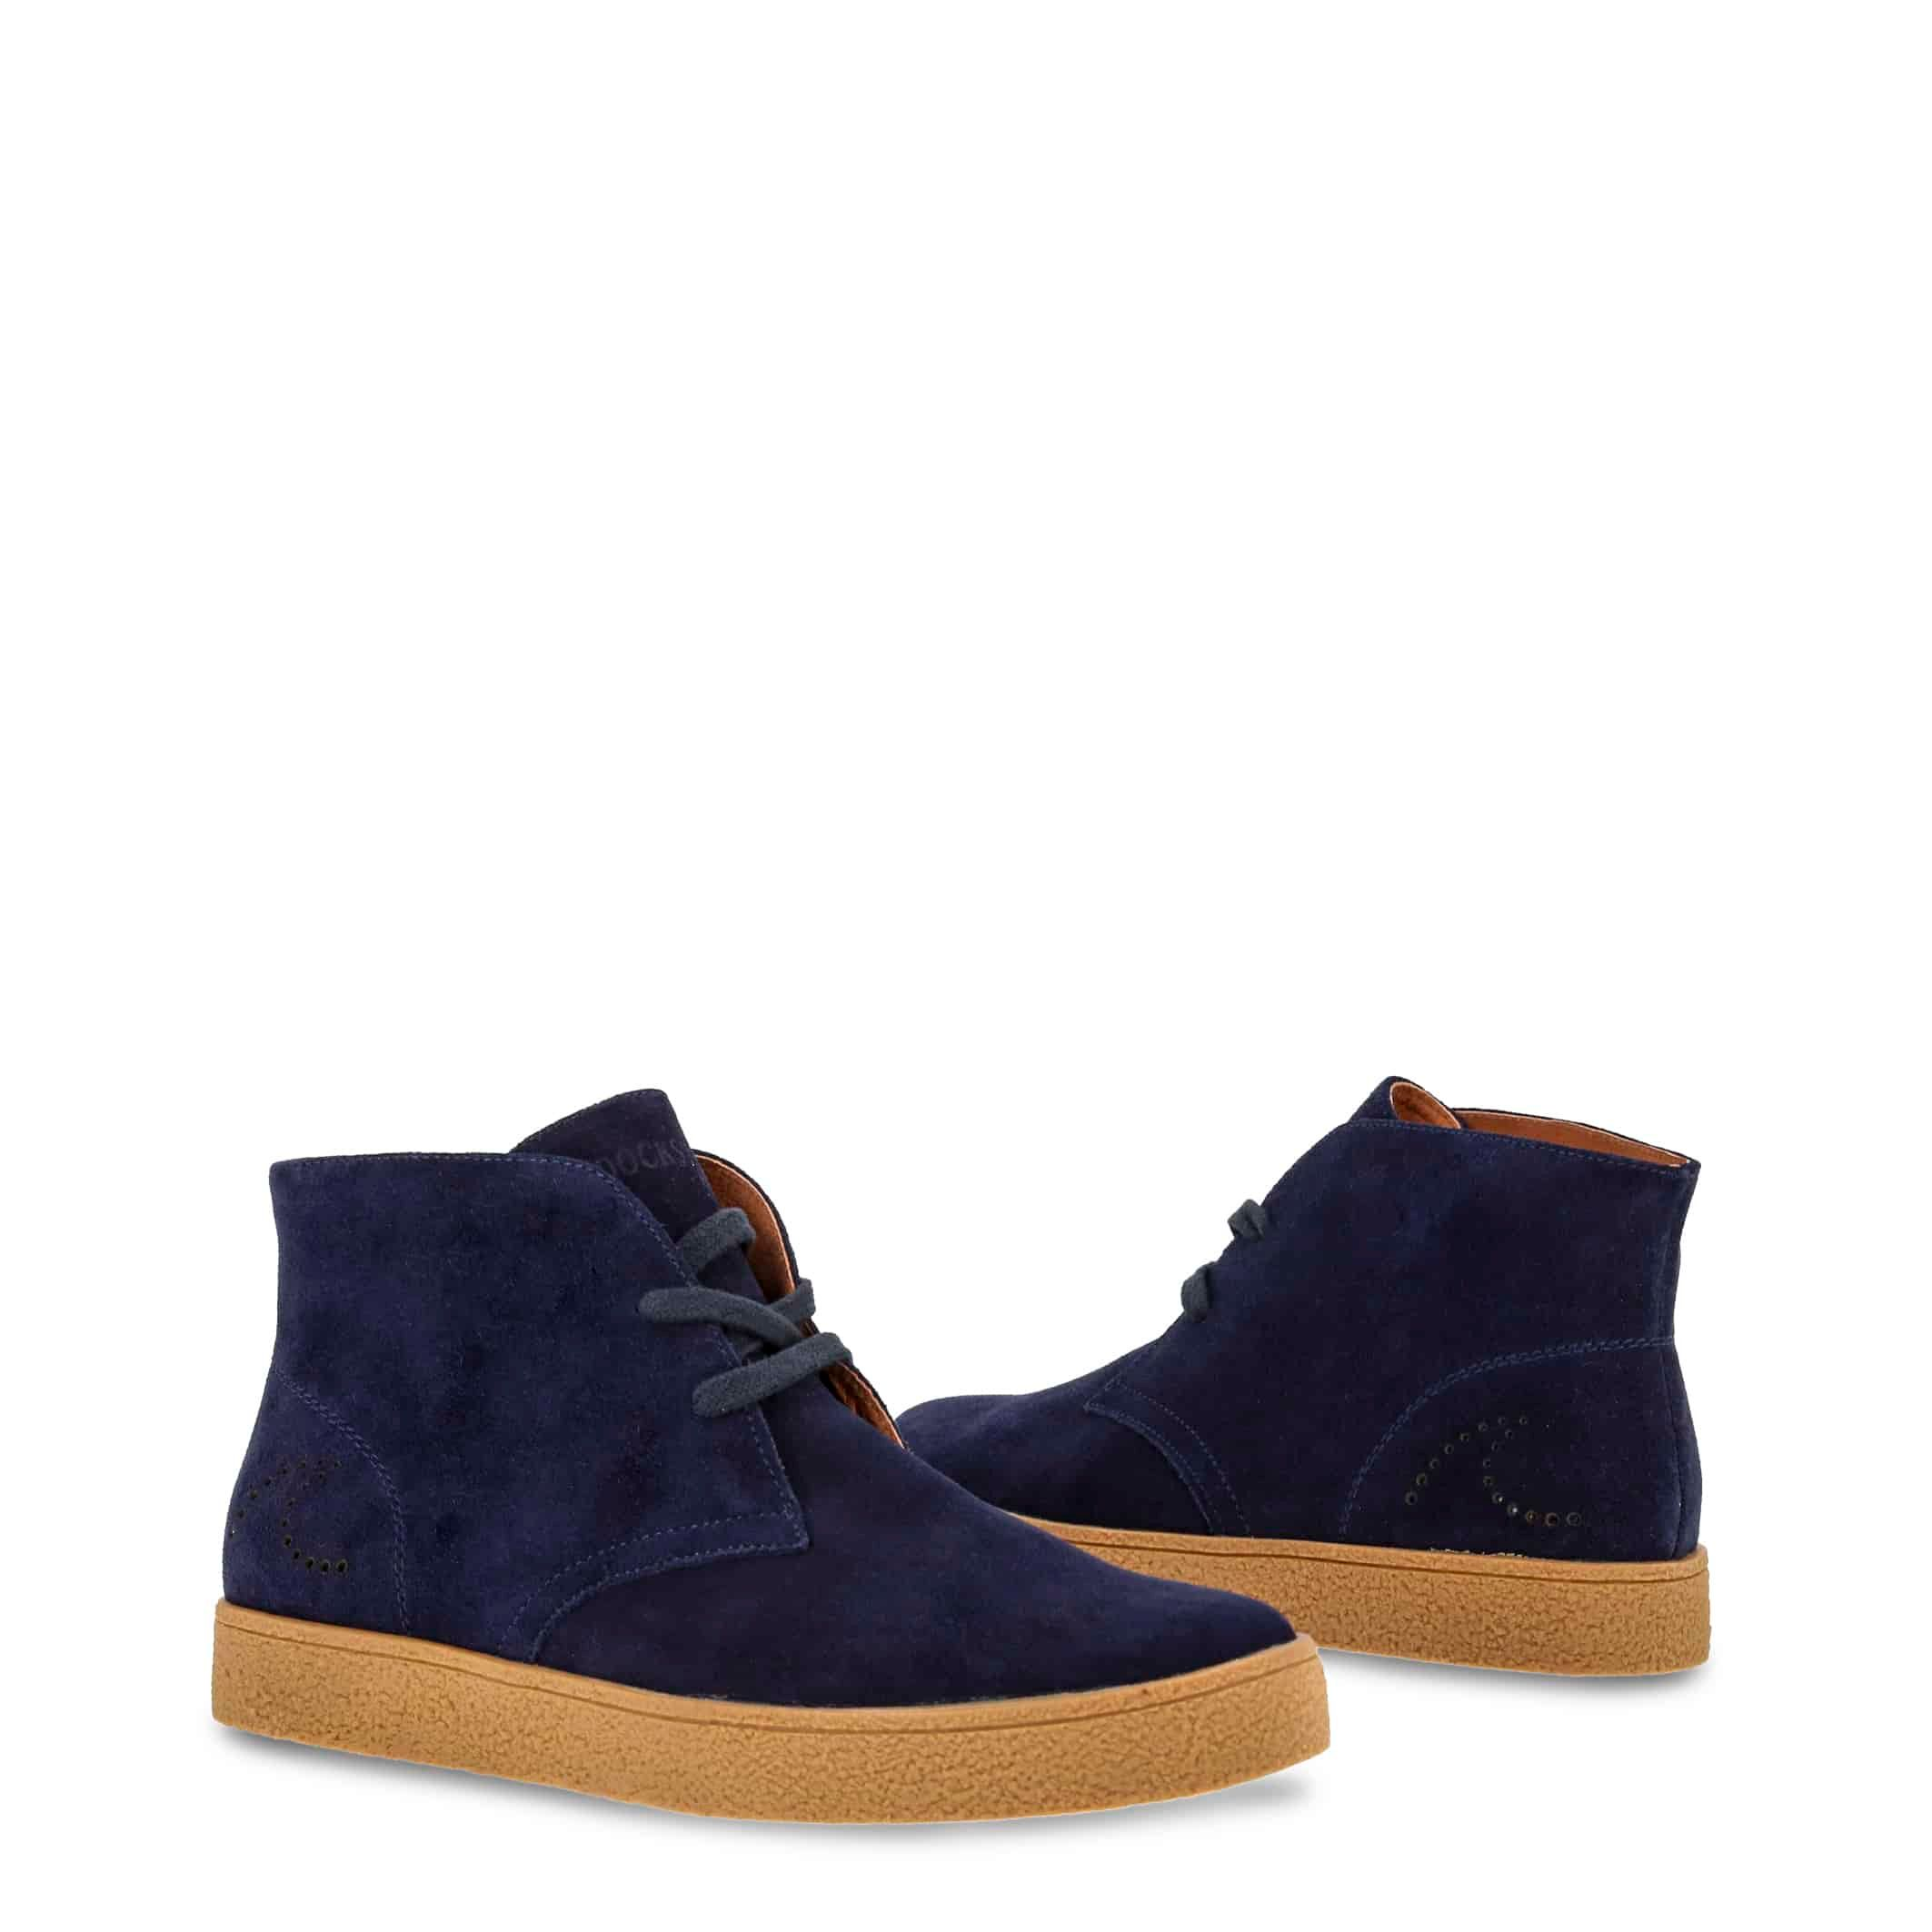 Chaussures à lacets Docksteps – NEWSALINAS-MID_2126_BLUE